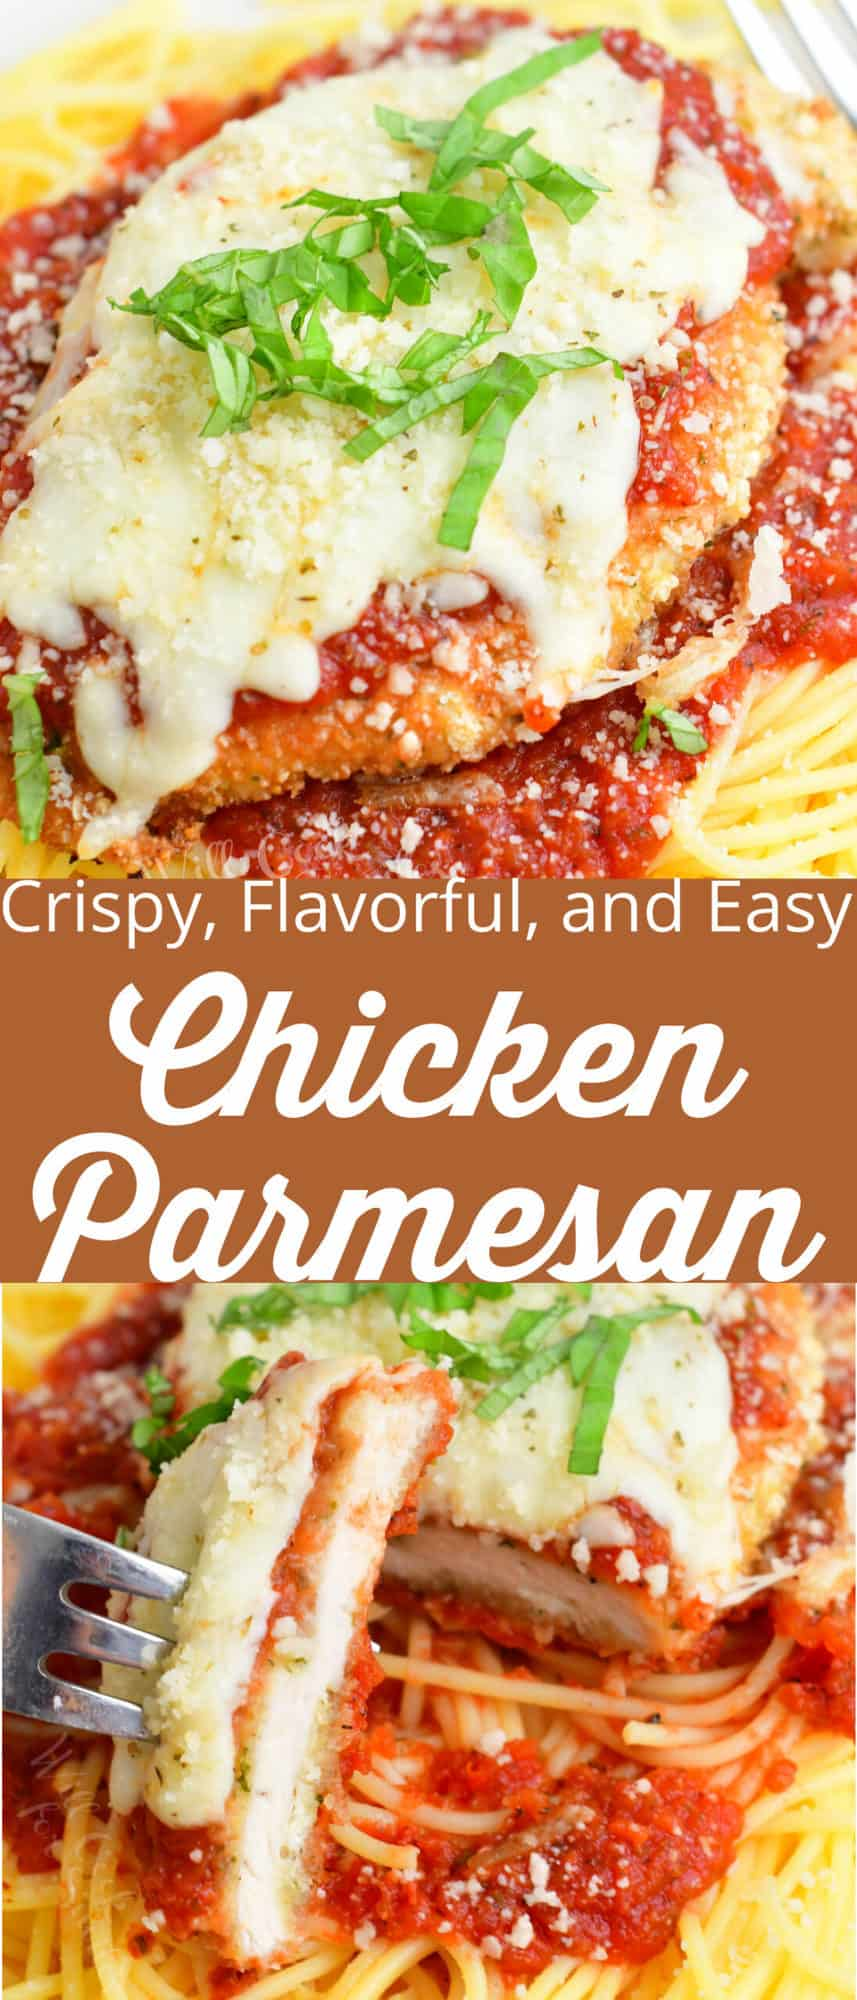 collage of two chicken parmesan images up close and slicing a piece with title